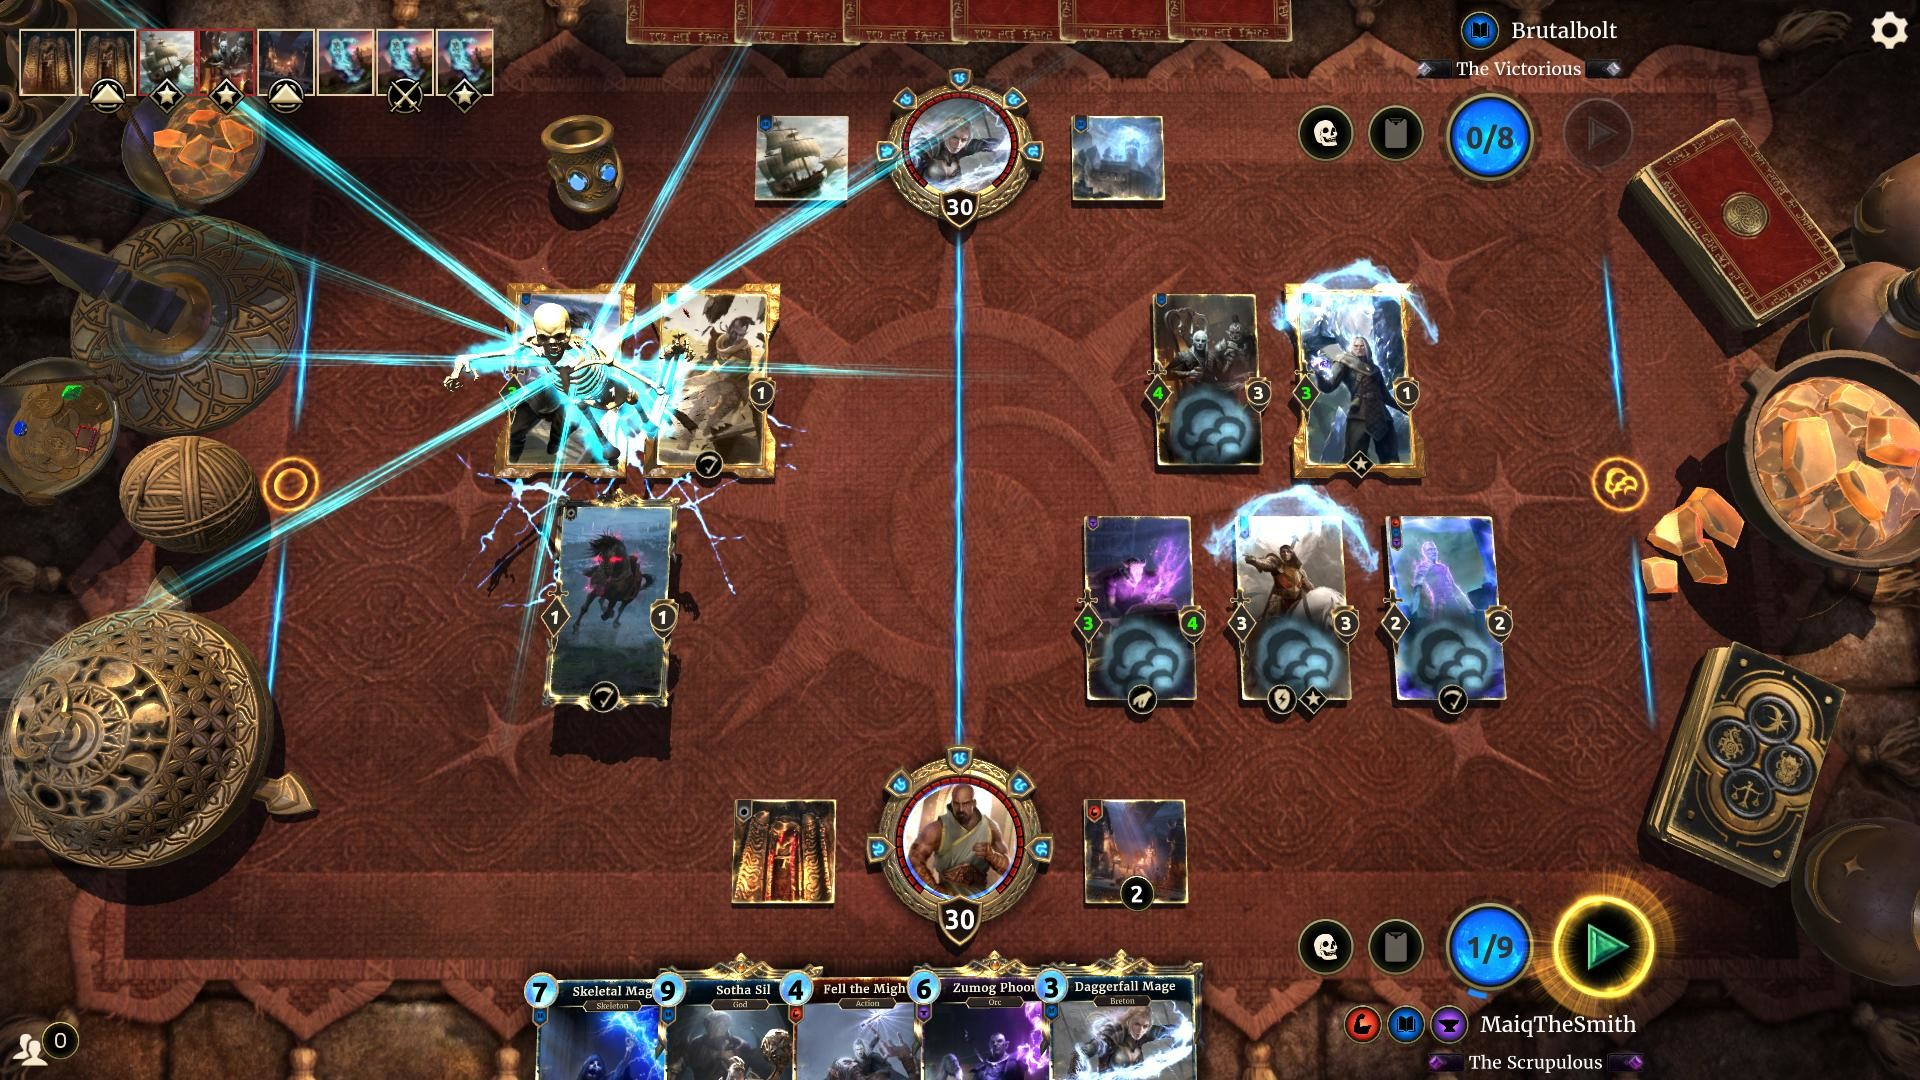 The Elder Scrolls: Legends Gameplay Screenshot 2